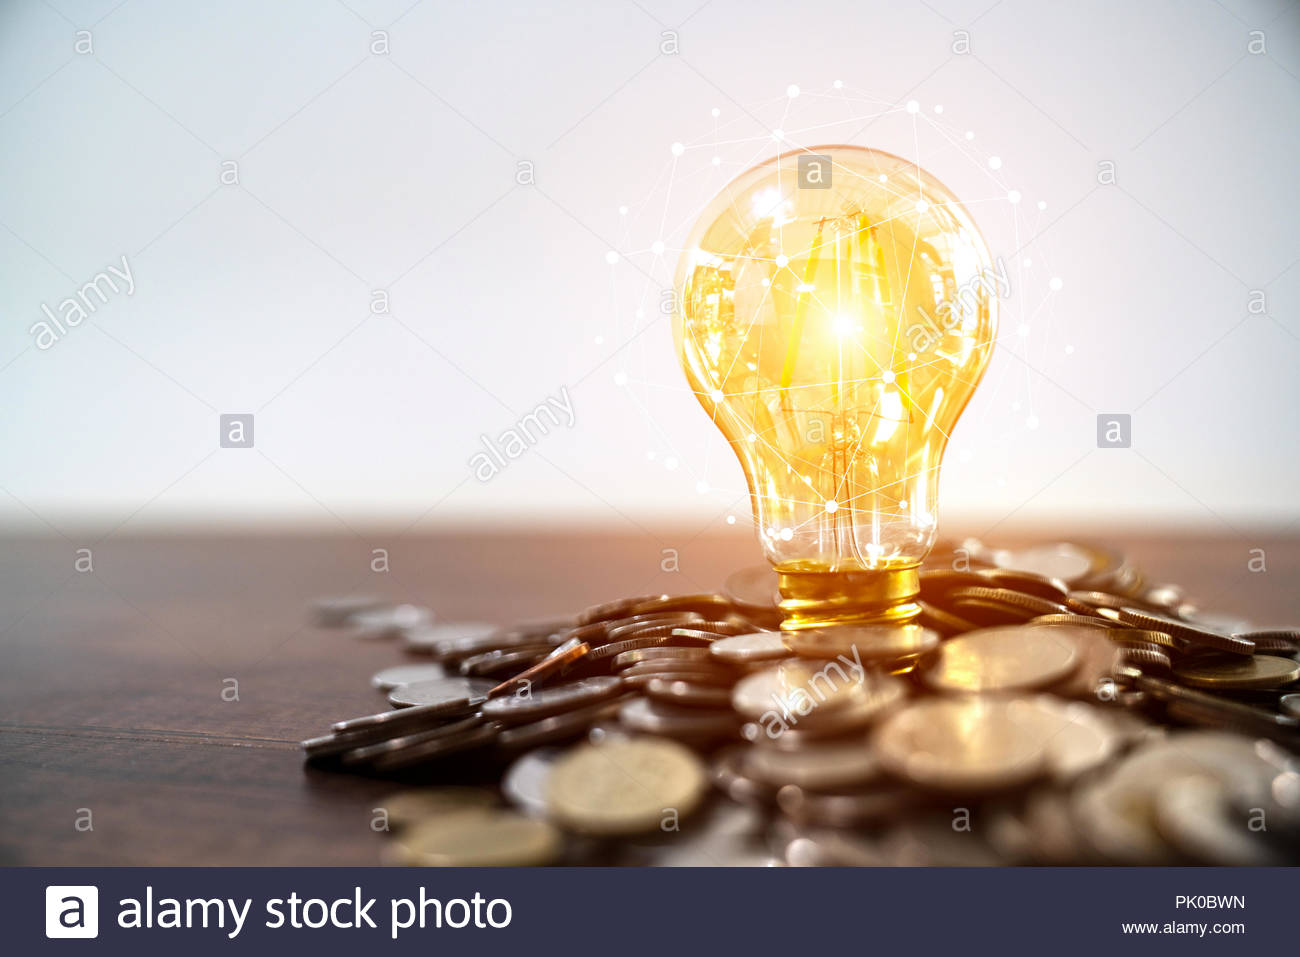 Light bulb and stack of coins in concept of savings and money growing or energy save - Stock Image